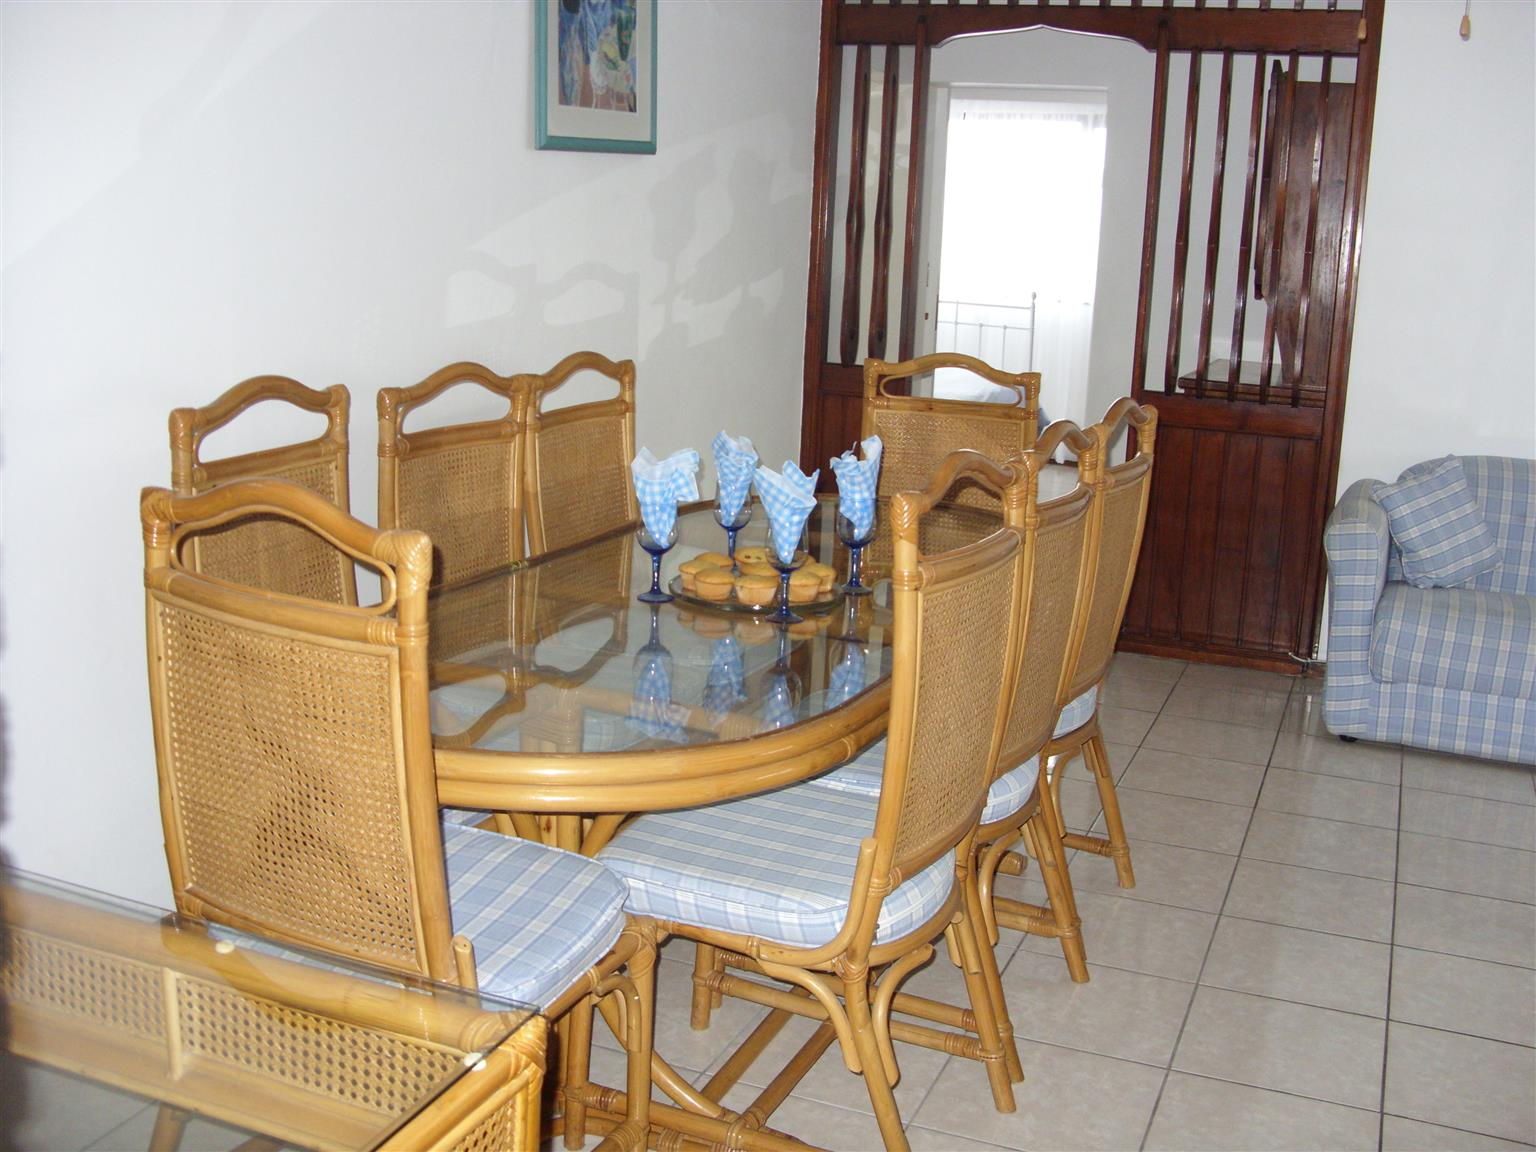 ST MICHAELS-ON-SEA FURNISHED THREE BEDROOM TWO BATHROOM SPACIOUS FLAT. IMMEDIATE OCCUPATION. R6750 P.M. SEA VIEWS